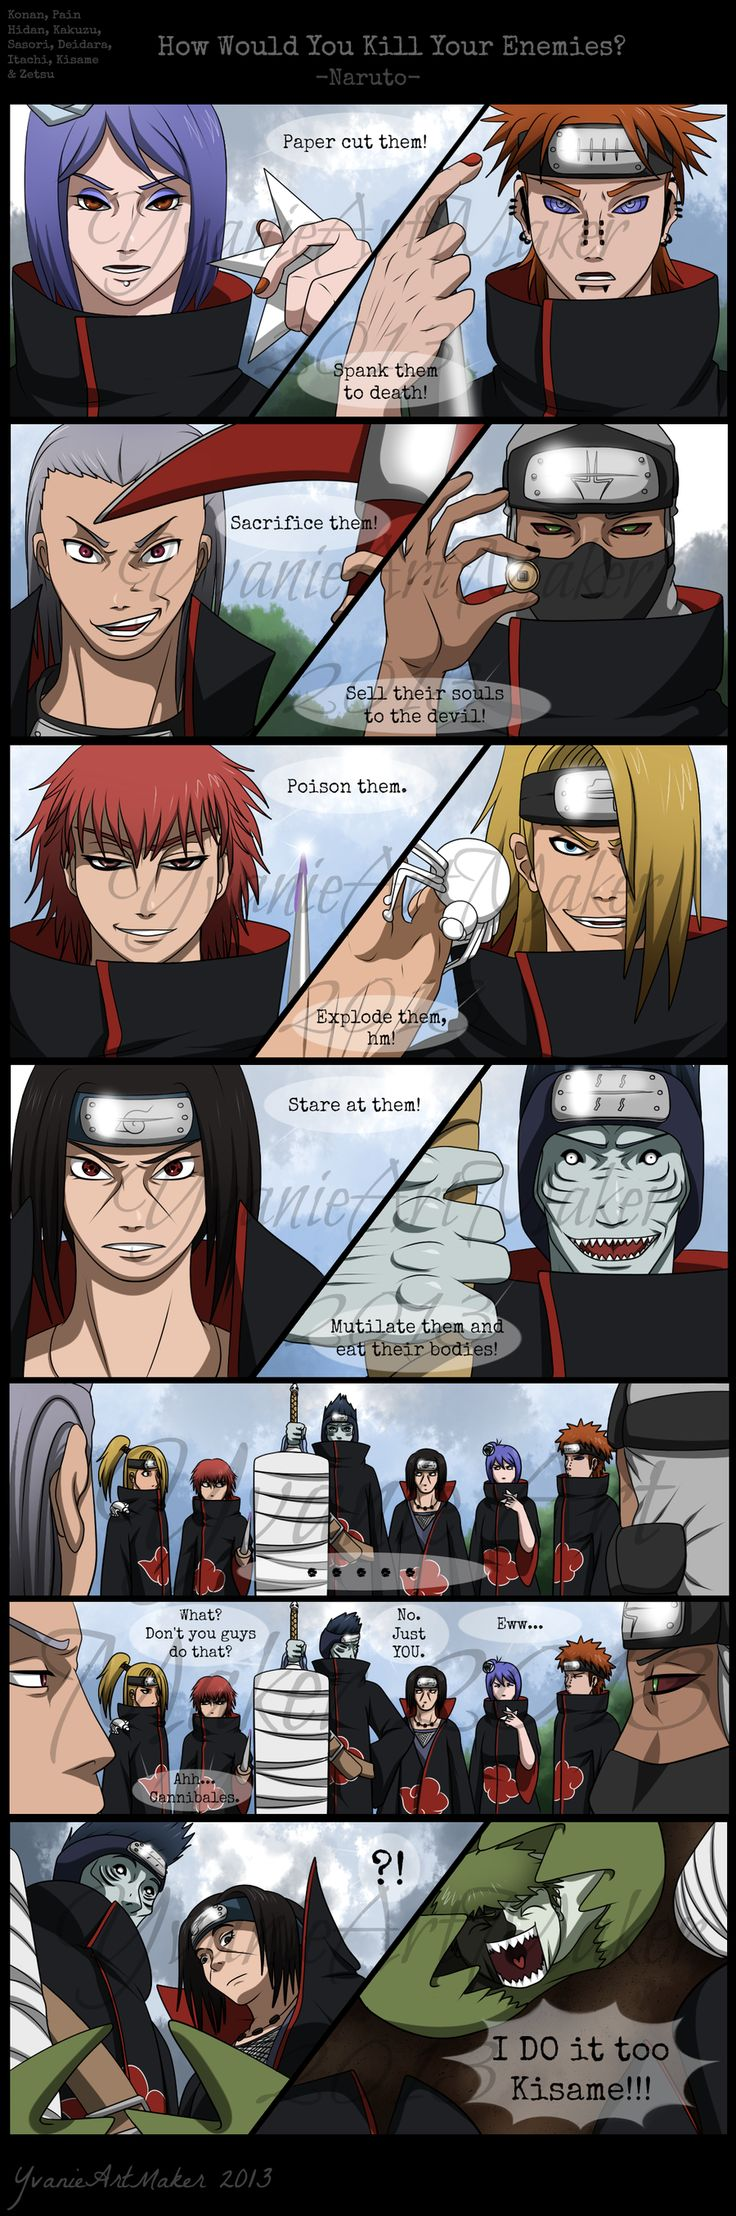 Konan sometimes suffocates them, Pein actully impales them, Kakuzu doesn't sell their souls to the devil, Itachi has an eye prowess but he does fight, and Kisame doesn't actually eat his enemies...... But, HEY, it's supposed to be funny!